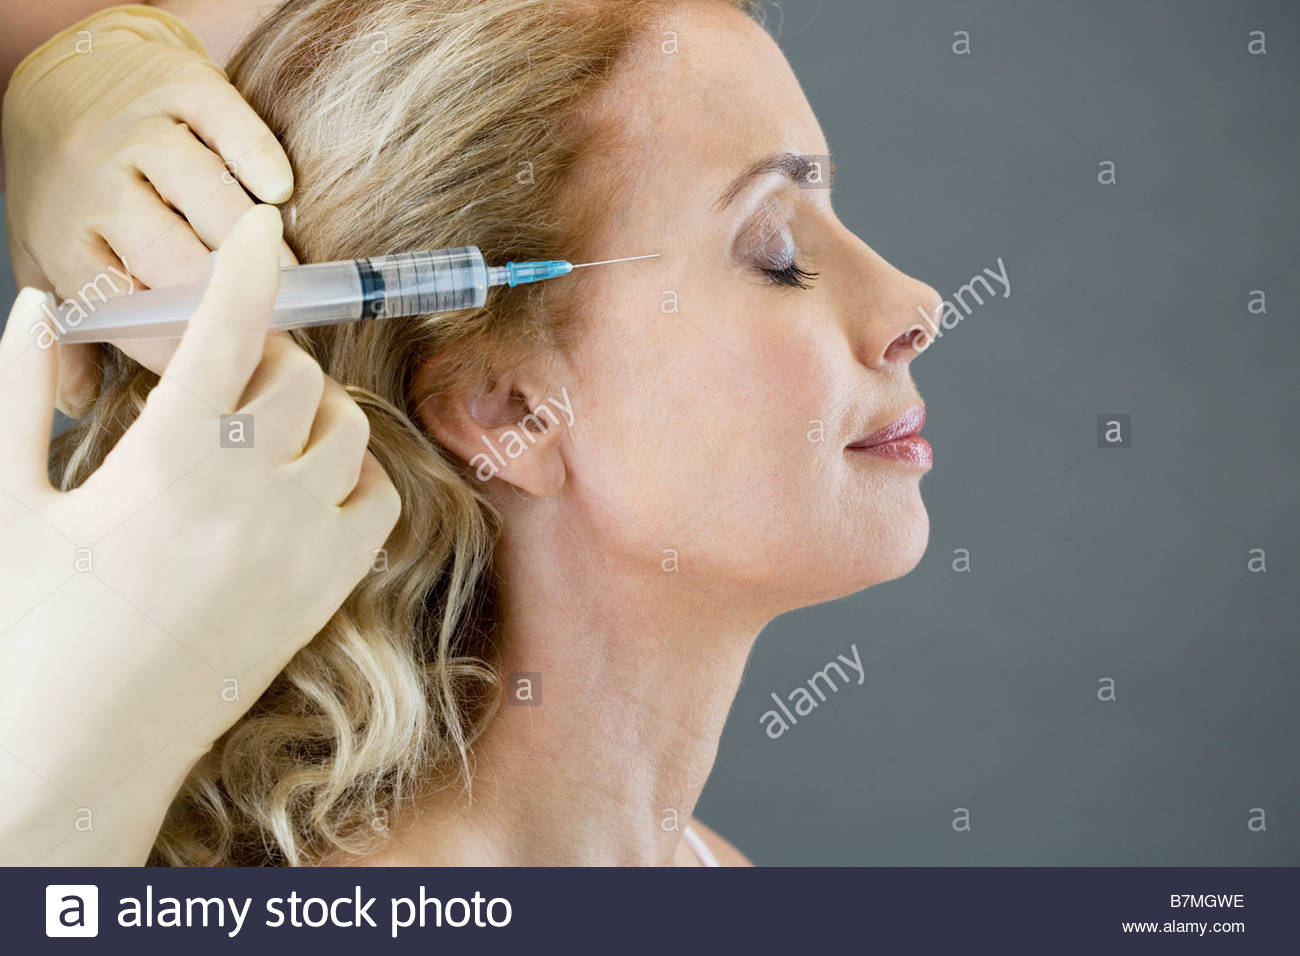 A middle-aged woman receiving a botox injection - Stock Image